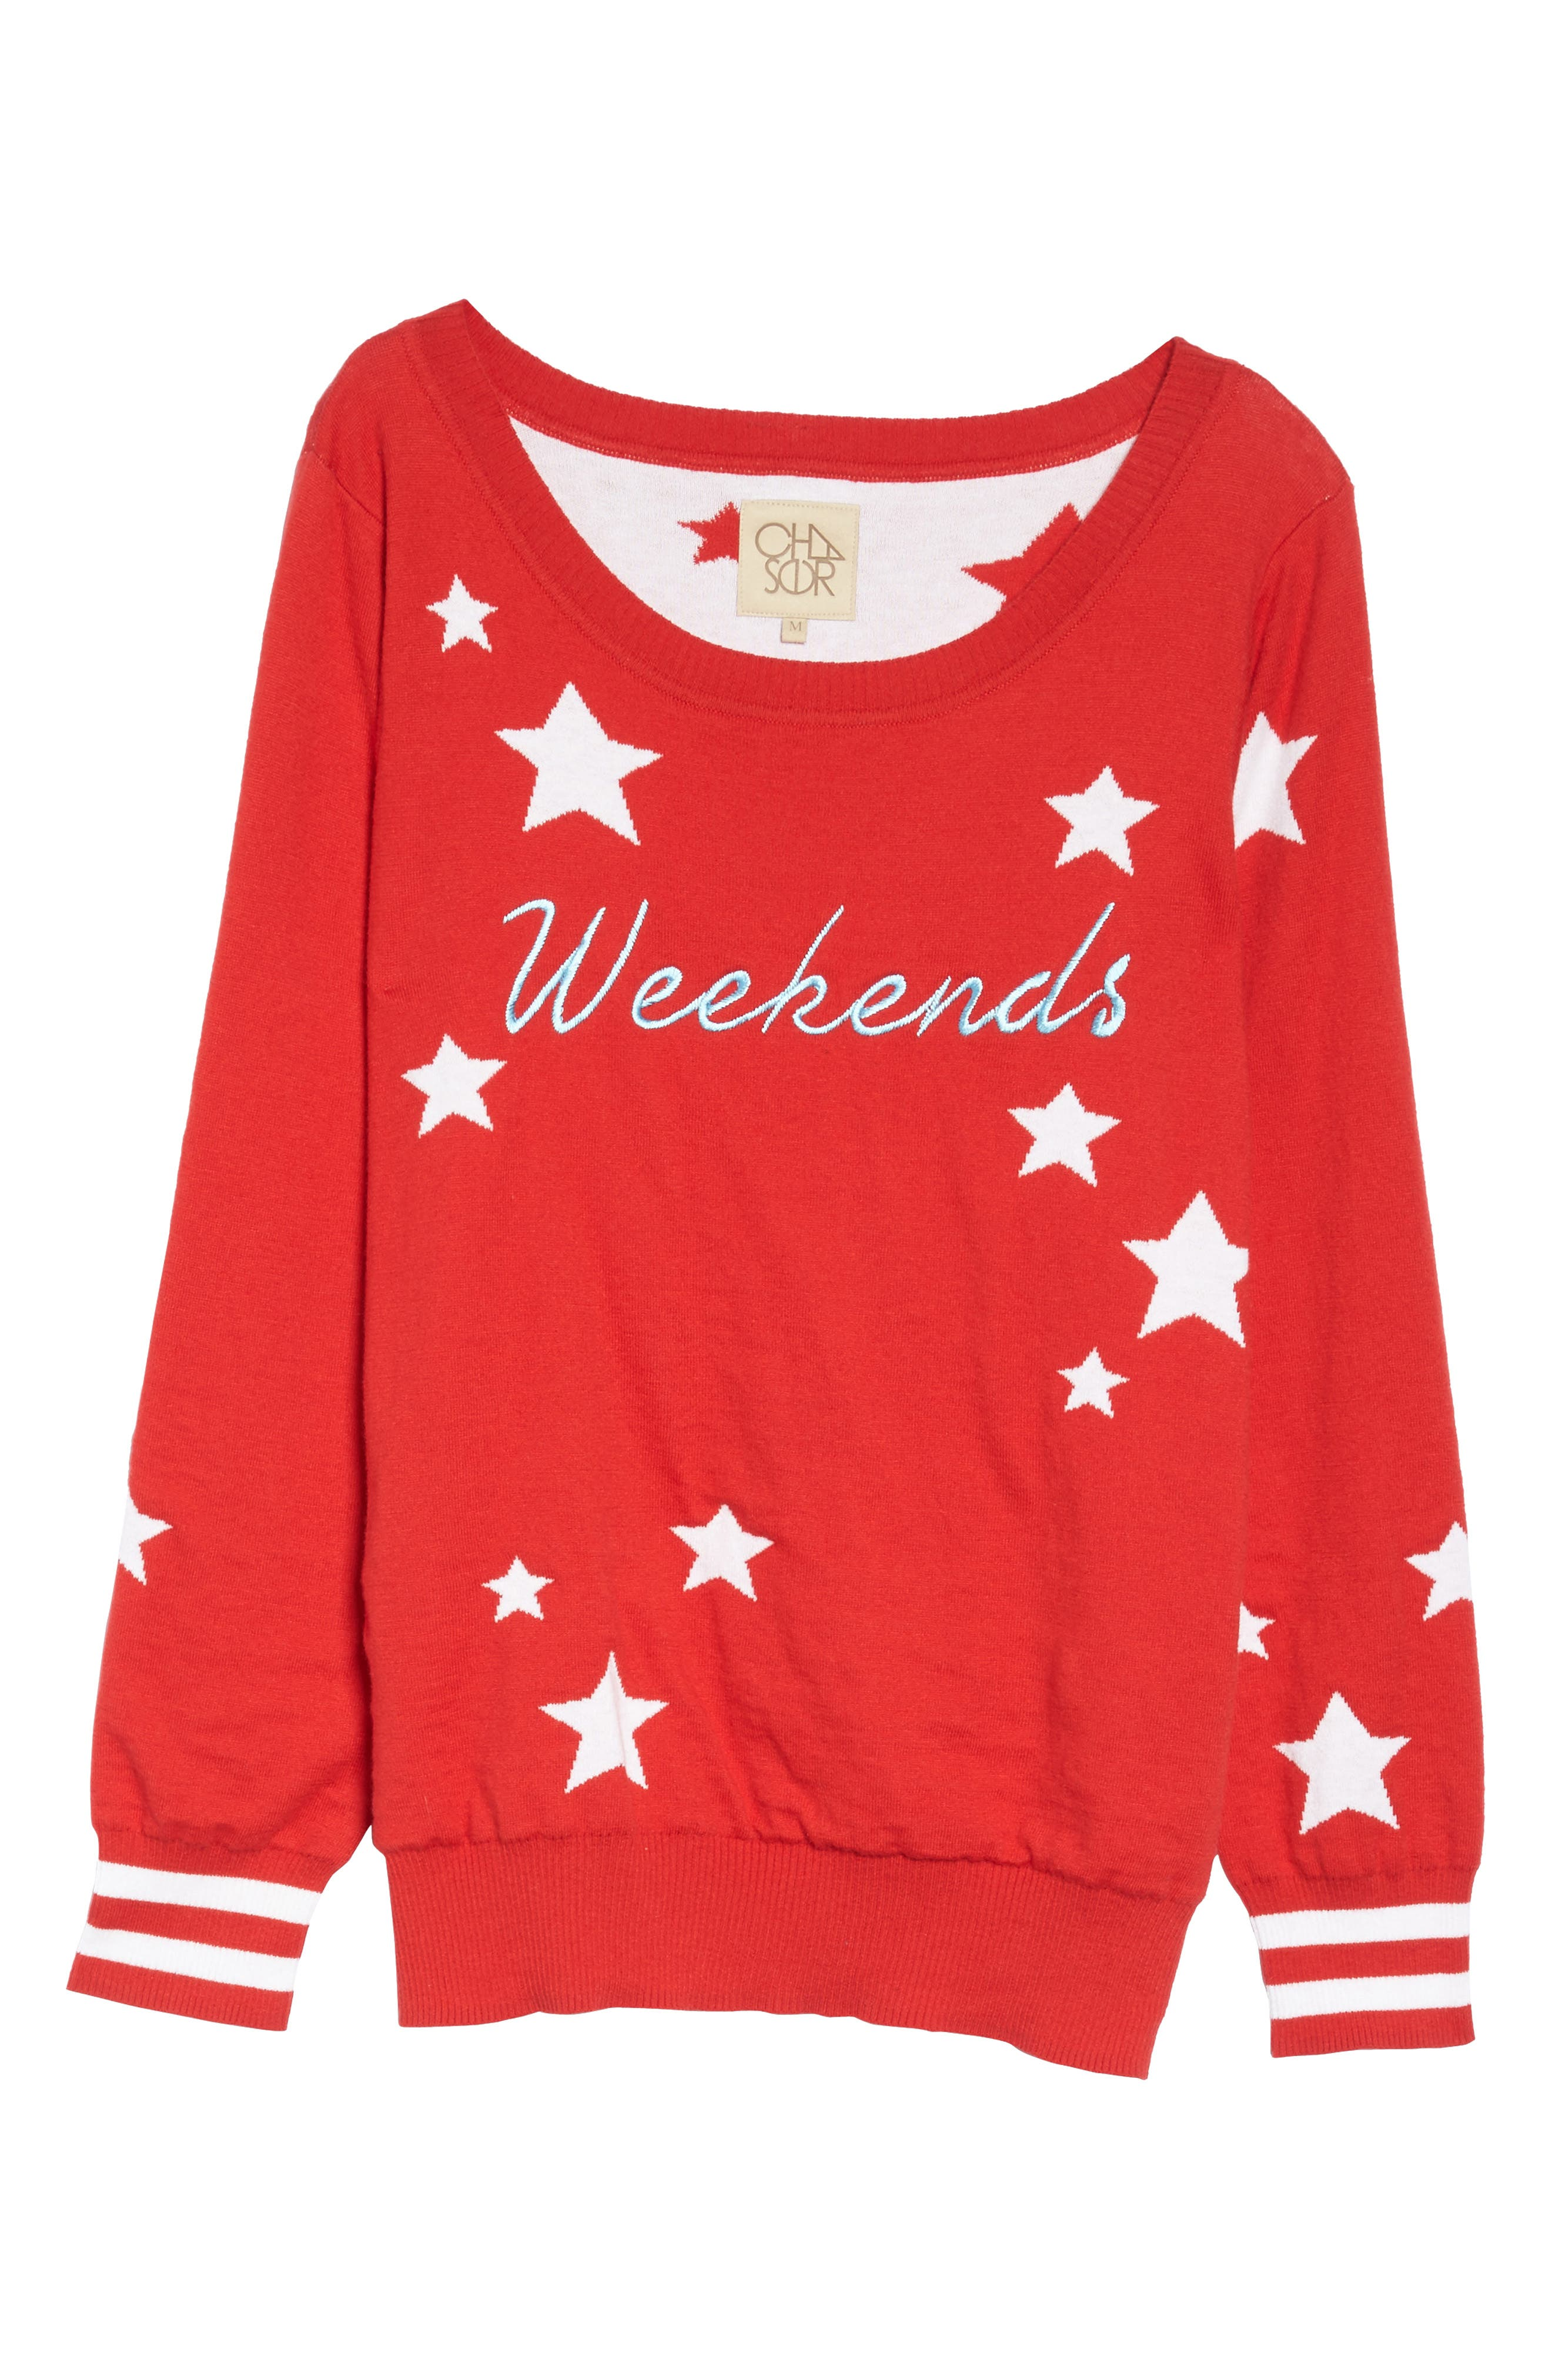 Weekends Intarsia Sweater,                             Alternate thumbnail 6, color,                             608